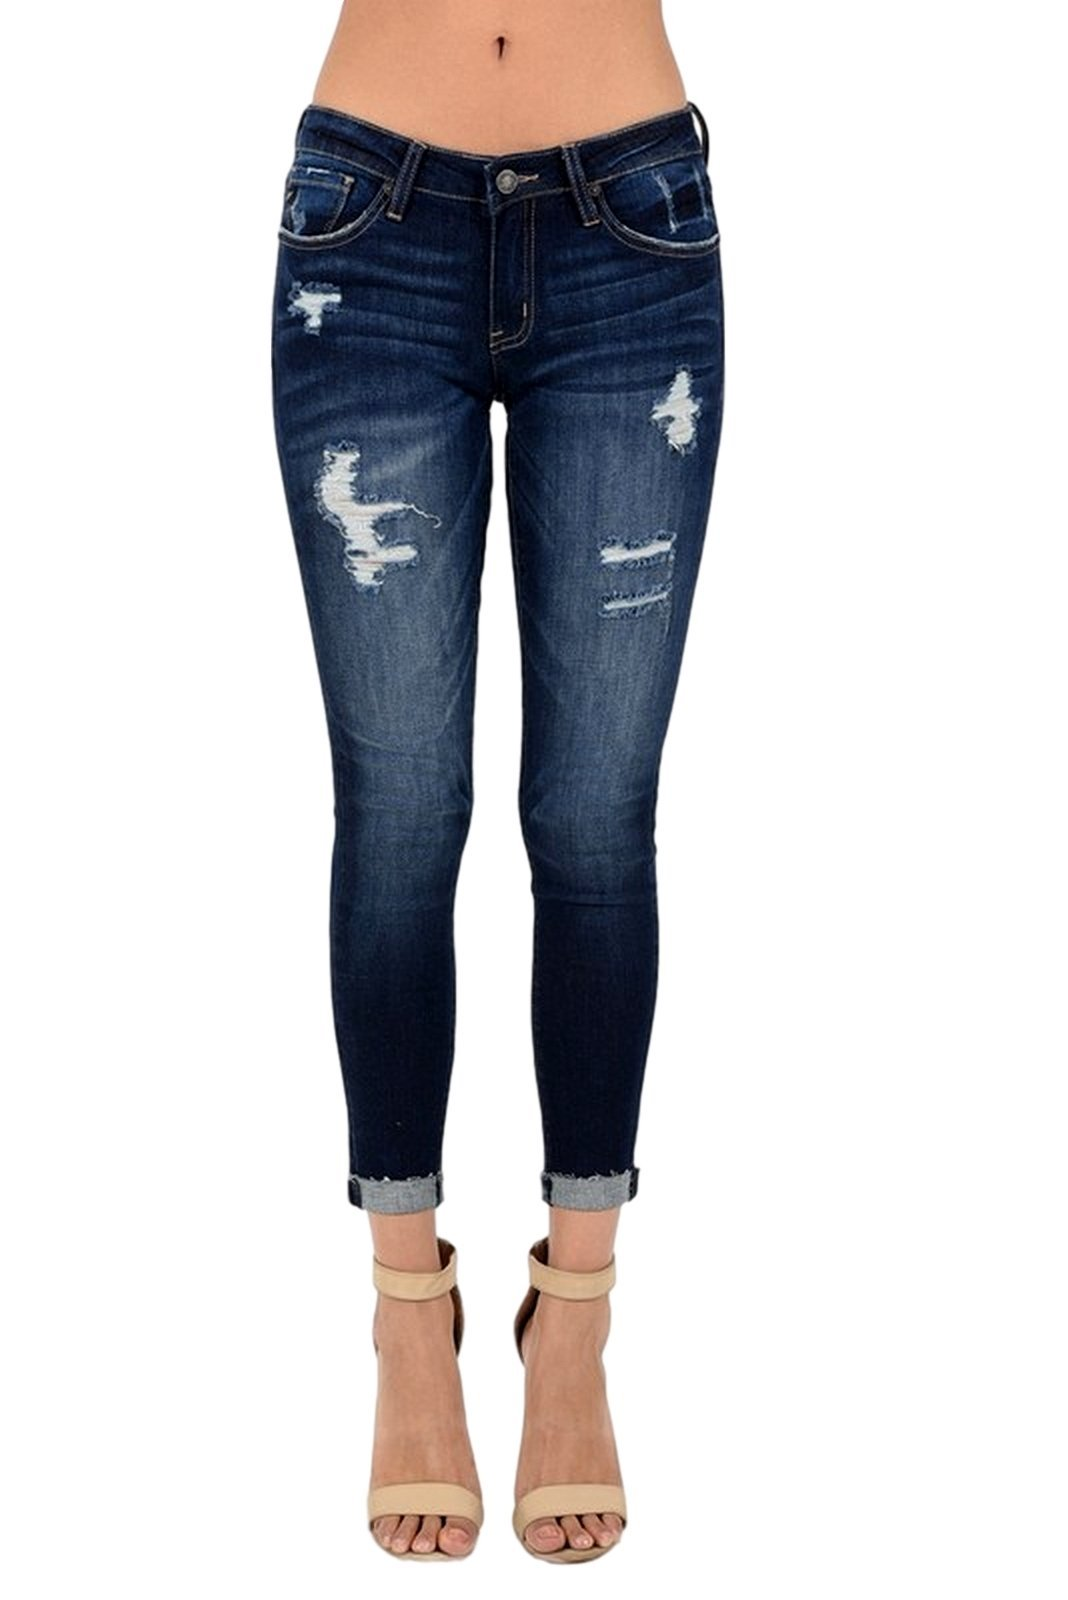 KAN CAN Women's Mid Rise Destroyed Cropped Skinny Jeans 3 Dark Denim KC6050